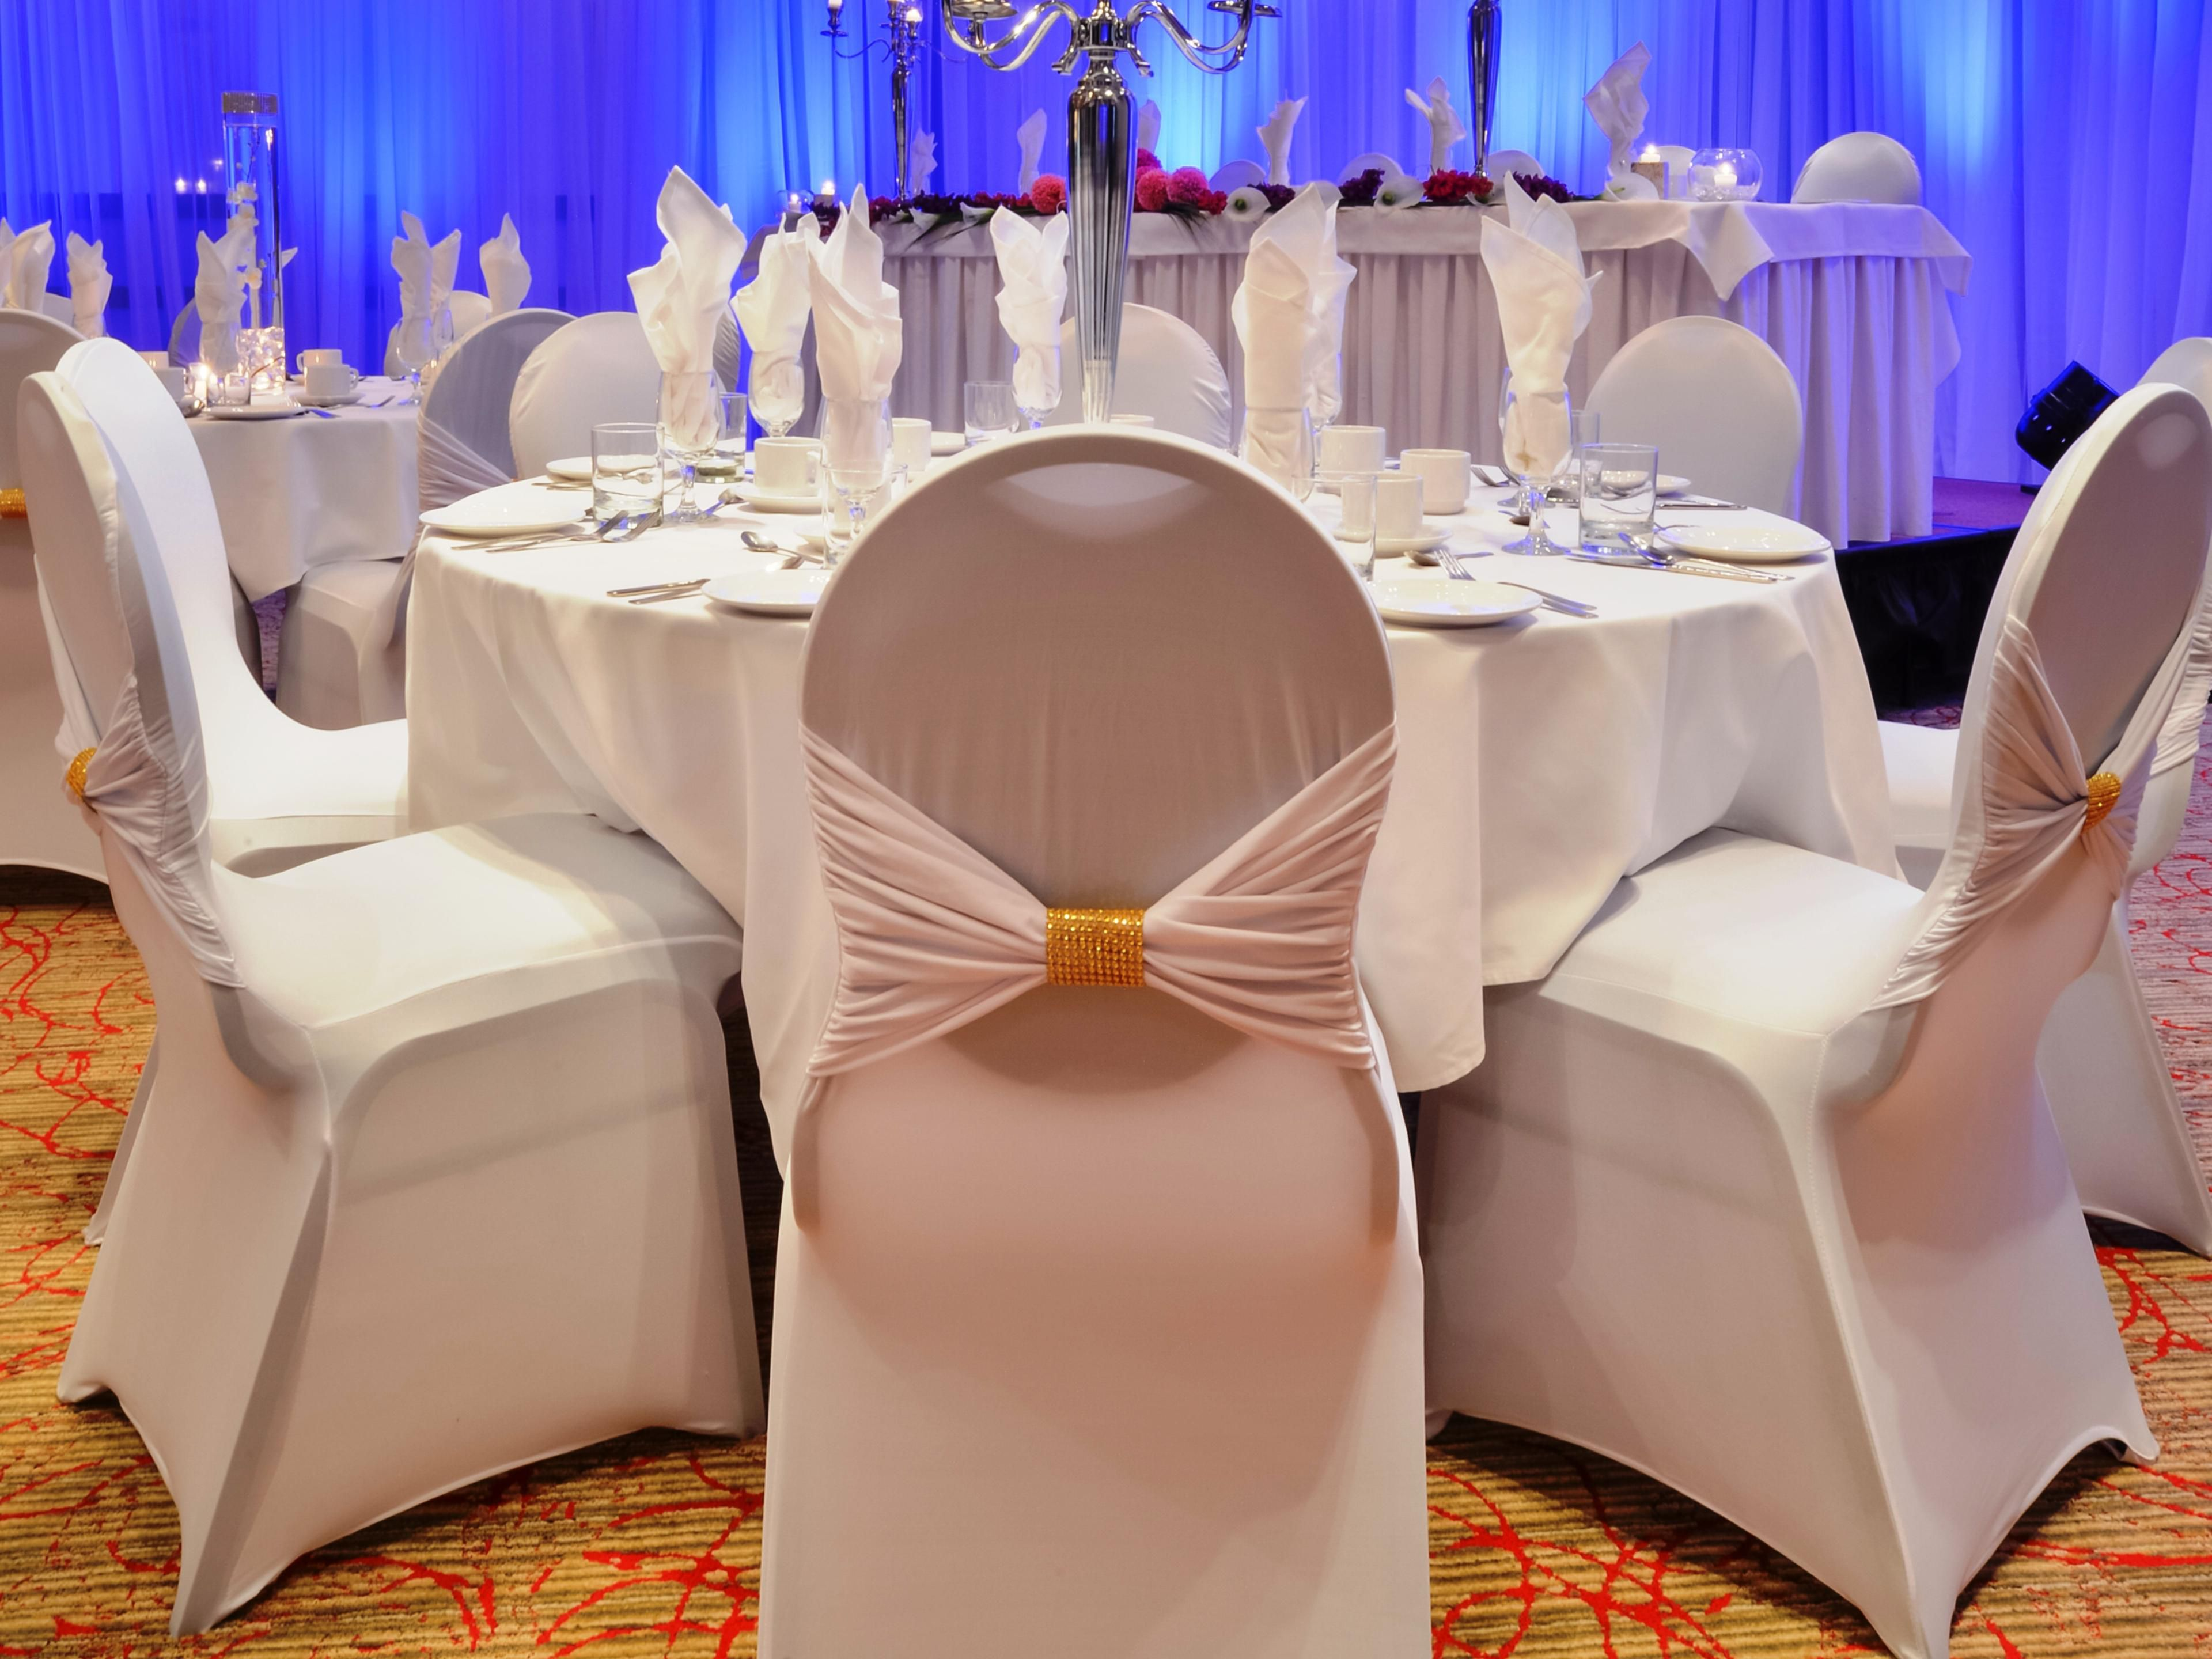 Every details are important for a special event